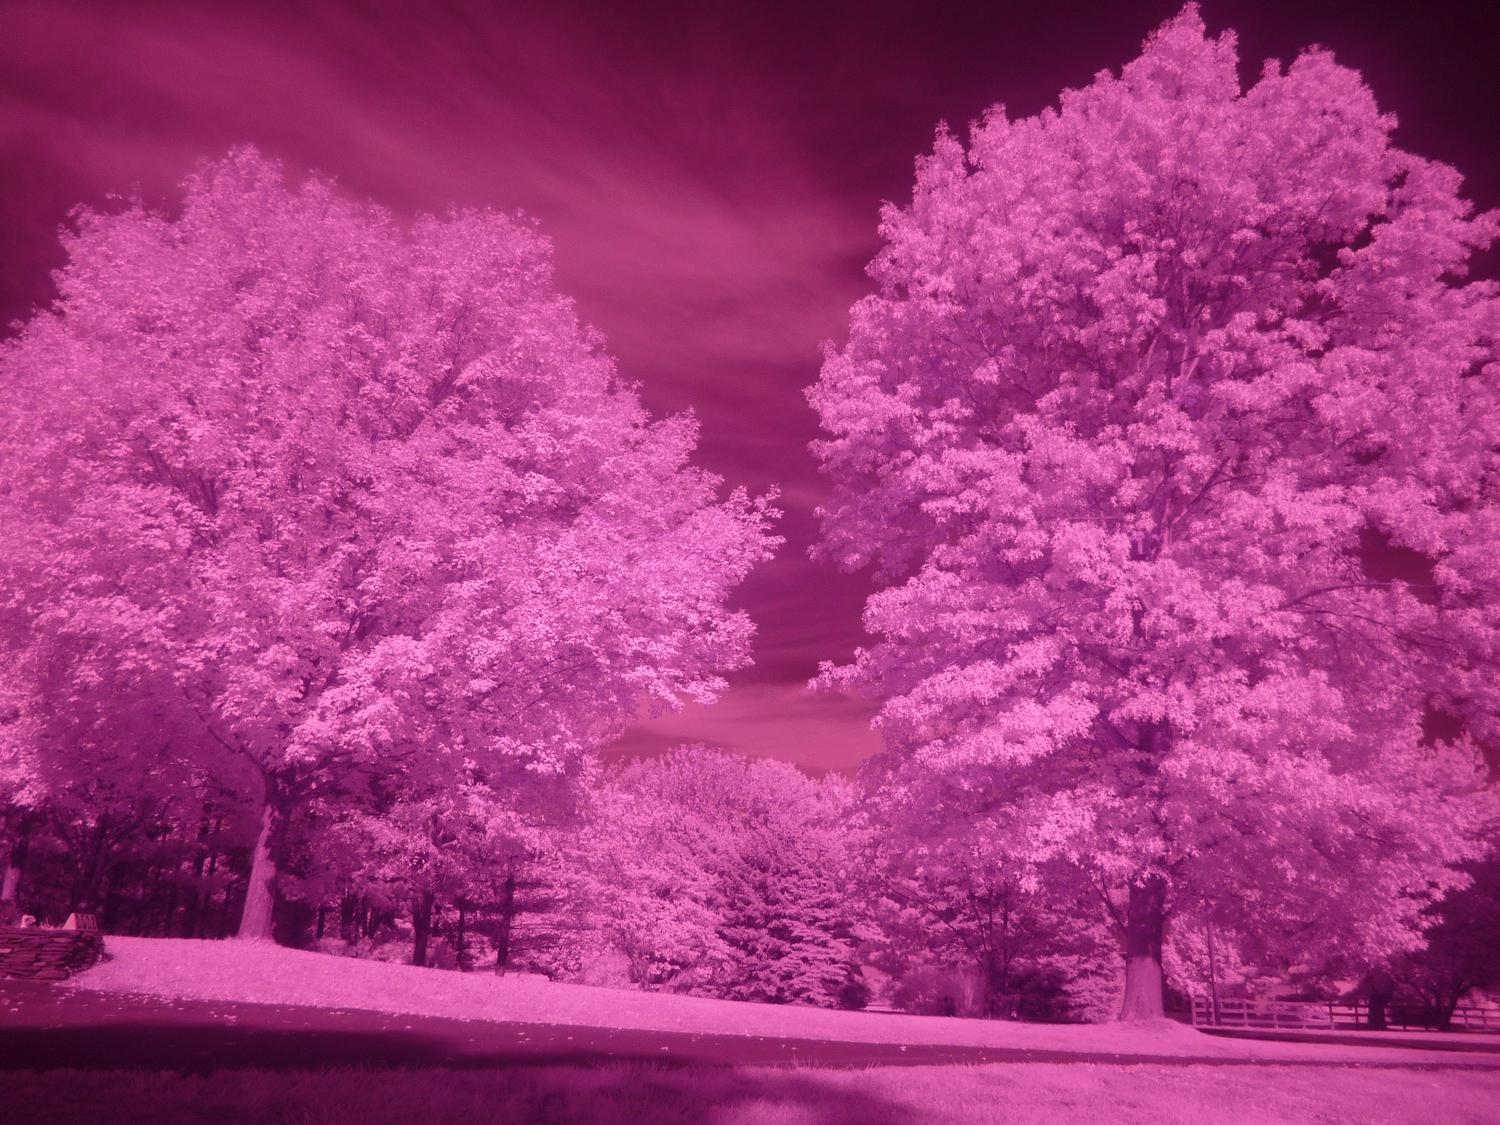 - Same as above, but with Hoya R72 filter. It has the classic infrared look, but overall pink. One second exposure, 100 ISO. - infrared photography with the Panasonic DMC-FZ28 - Tony Karp, design, art, photography, techno-impressionist, techno-impressionism, aerial photography , drone , drones , dji , mavic pro , video , 3D printing - Books -